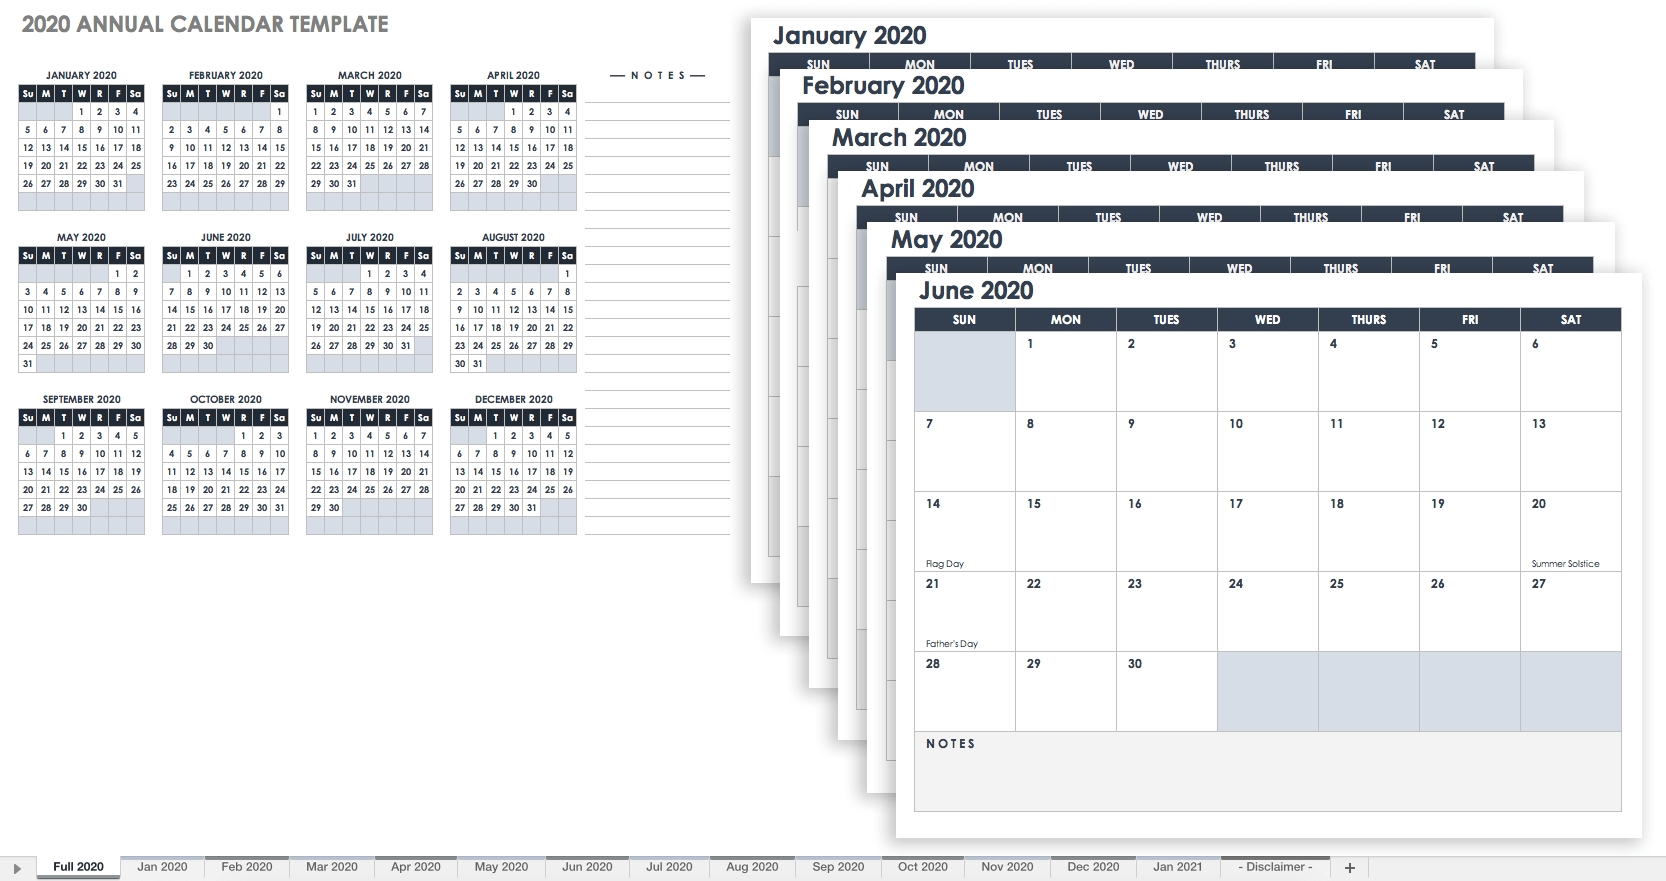 Free Blank Calendar Templates - Smartsheet intended for Free Printable Weekly Calendar Page With Notes Sections